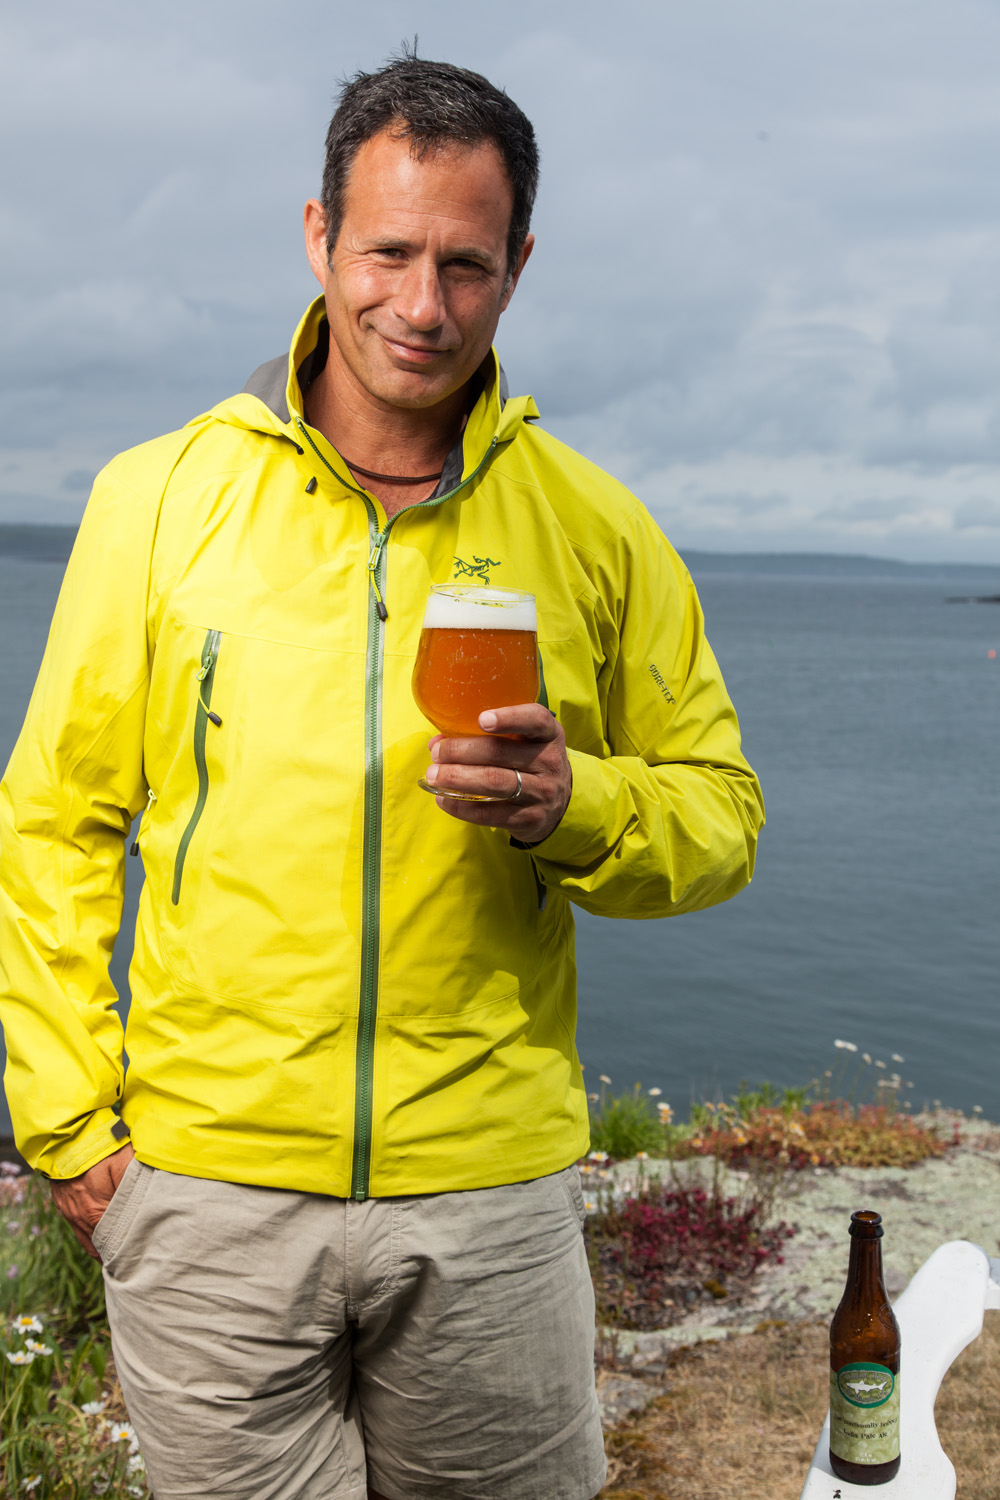 Sam Calagione, Honorary New England Brewer